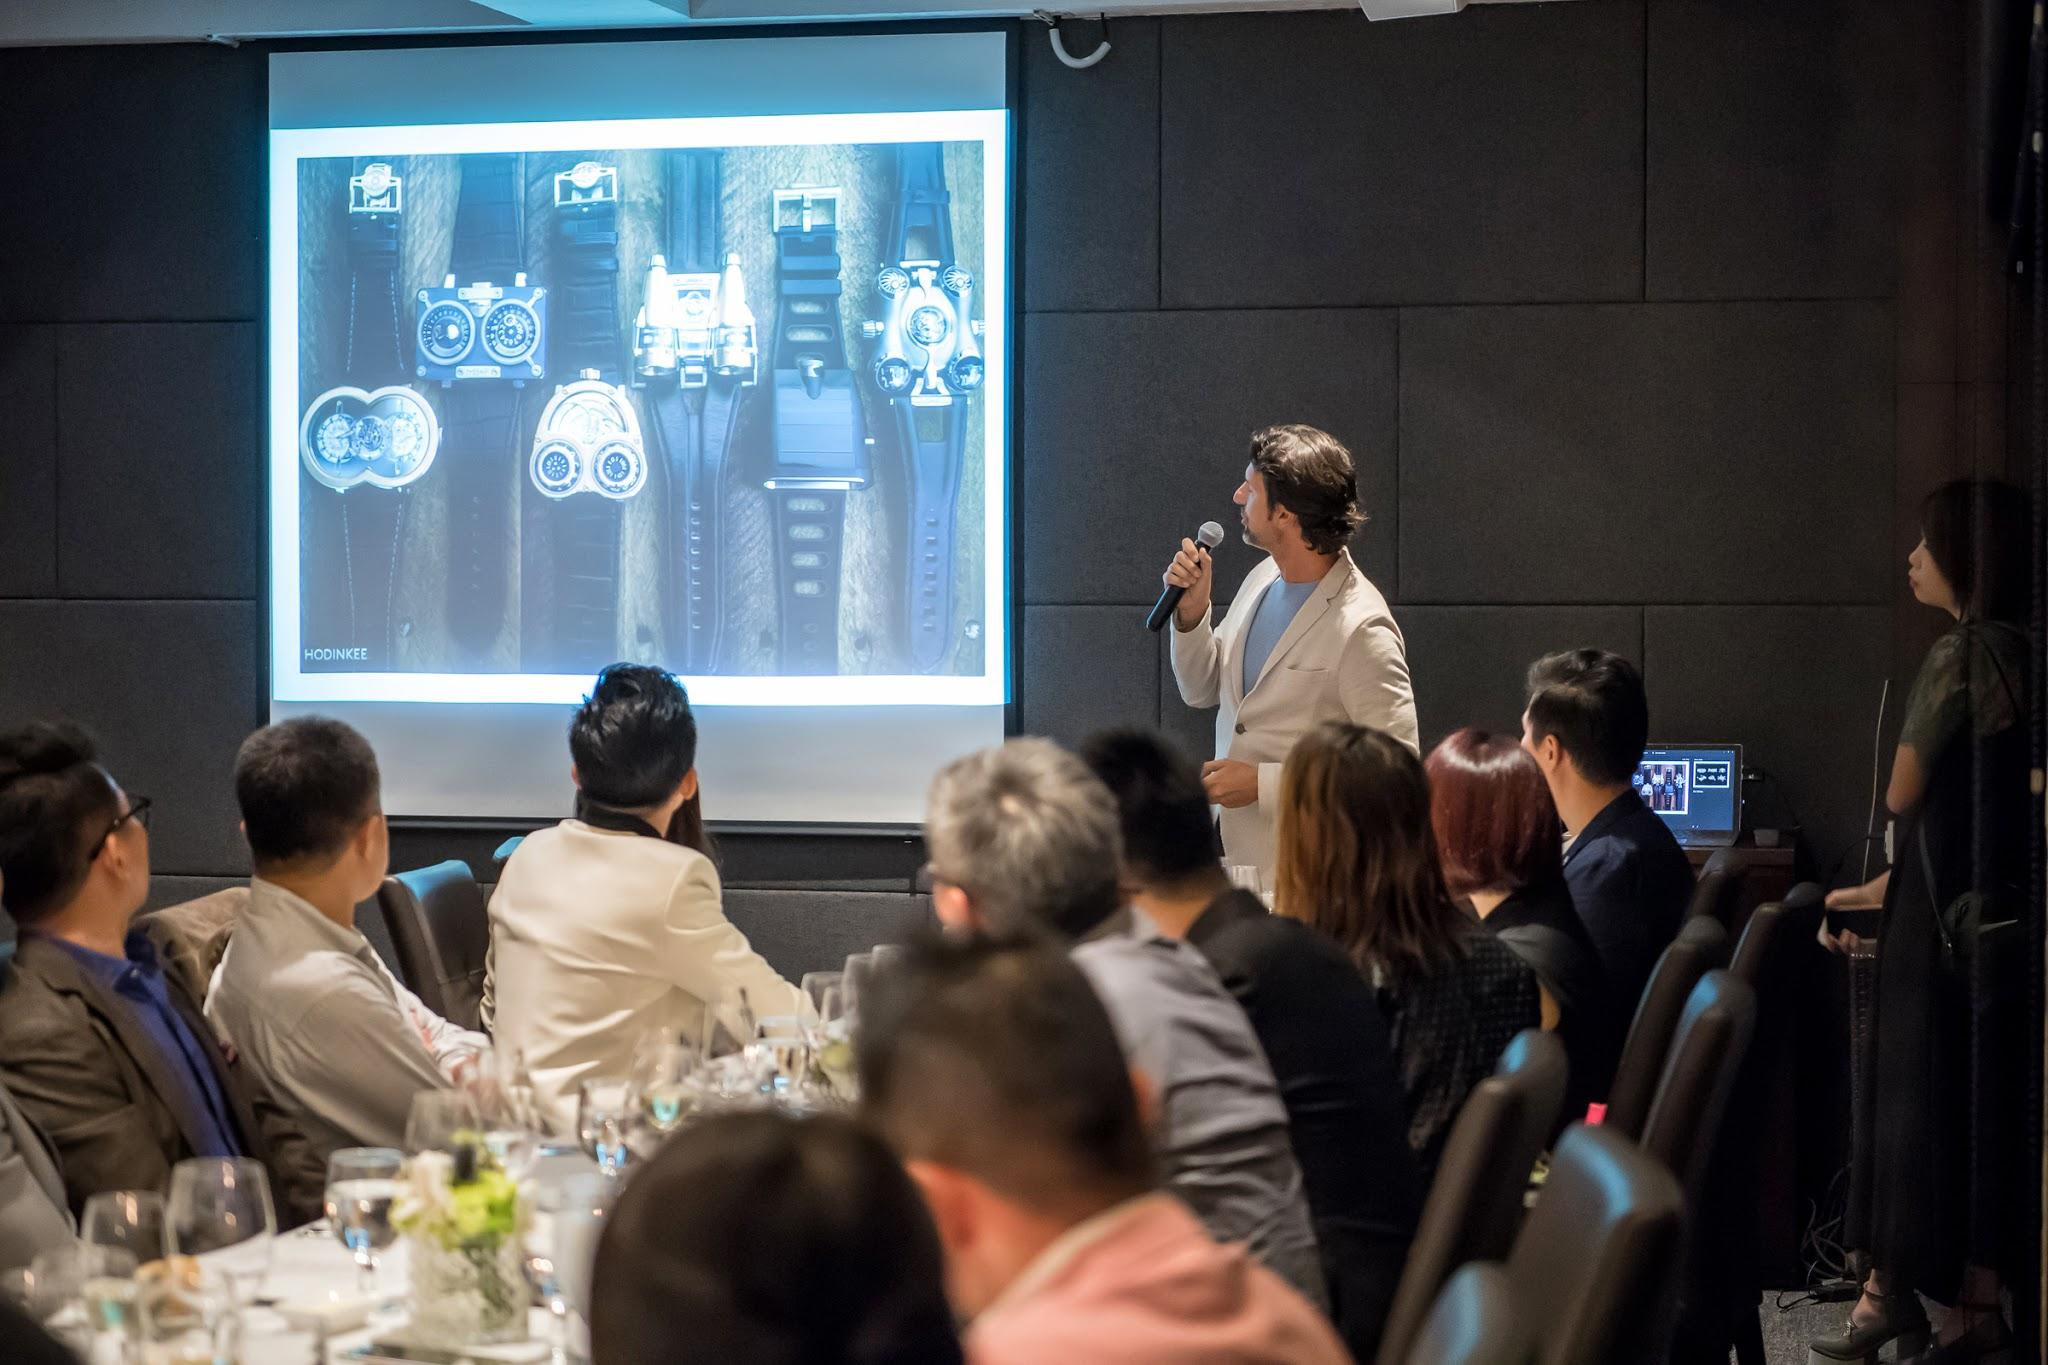 Max sharing with us his past creations, and his vision for MB&F